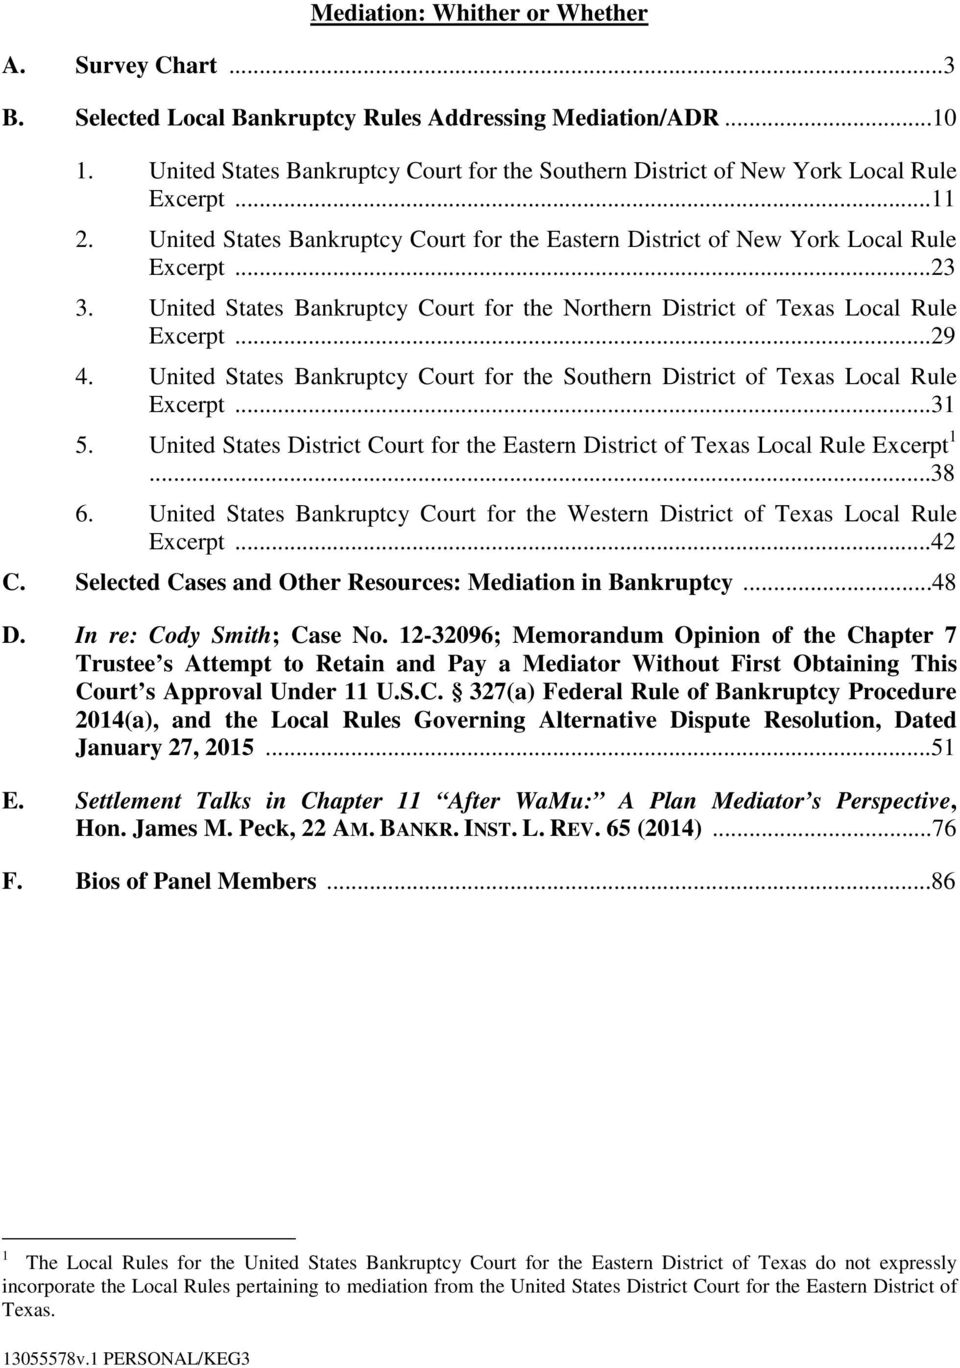 United States Bankruptcy Court for the Northern District of Texas Local Rule Excerpt...29 4. United States Bankruptcy Court for the Southern District of Texas Local Rule Excerpt...31 5.